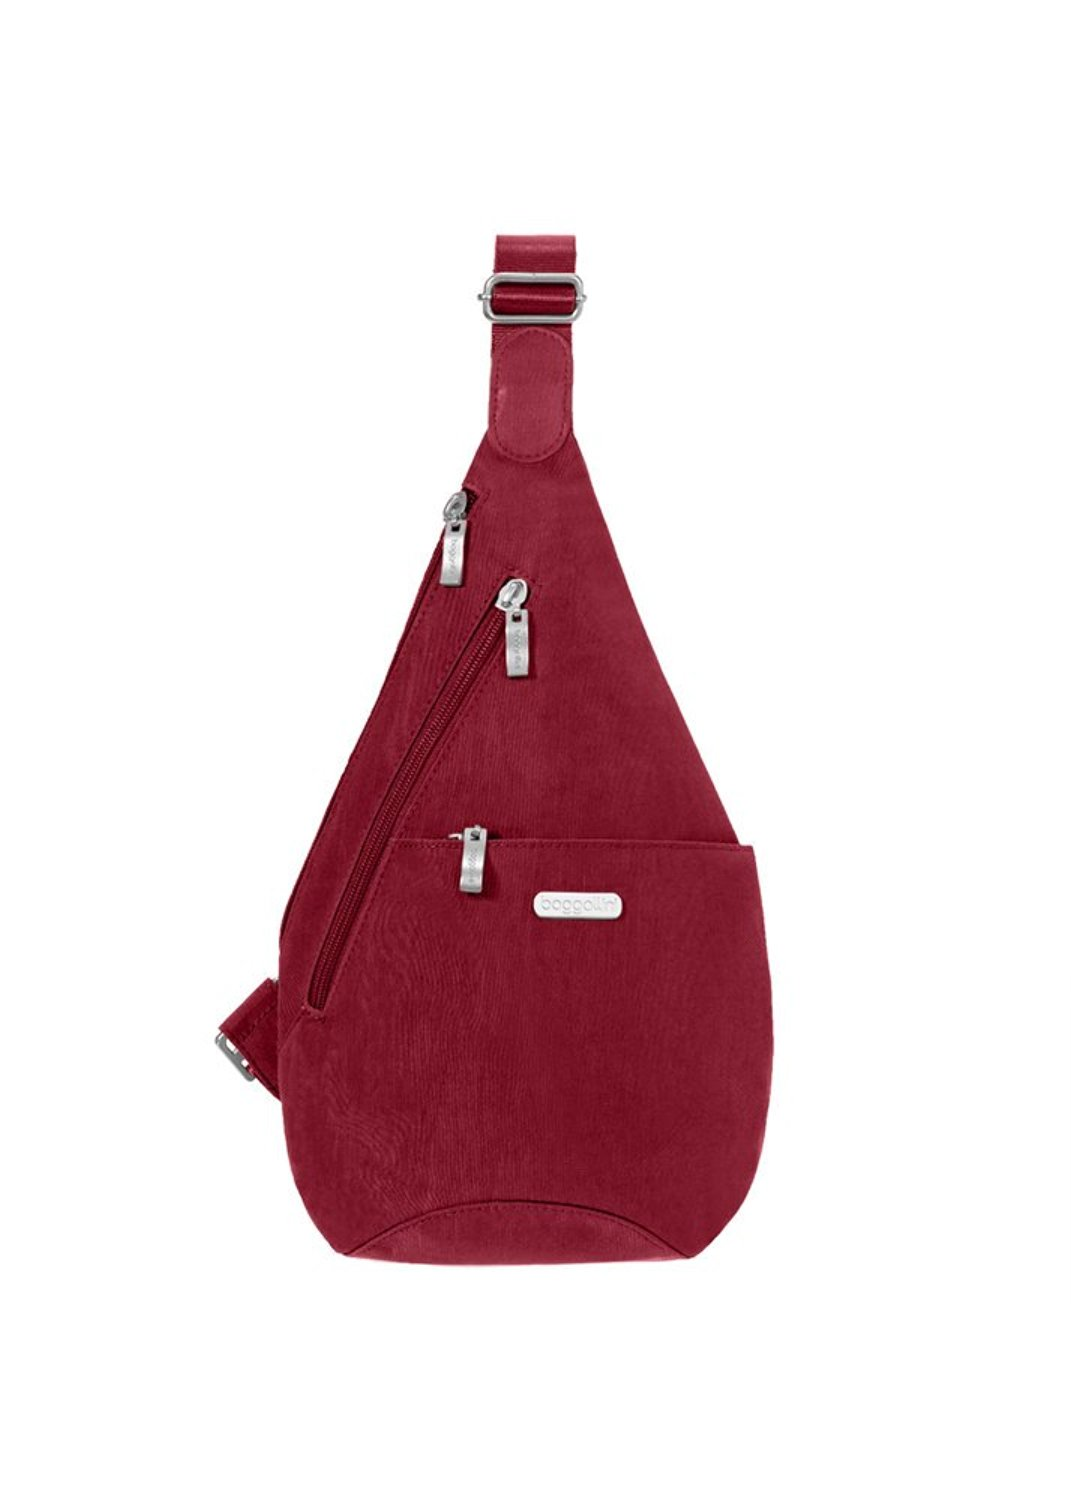 1ad3356151 Get Quotations · Baggallini Mini Sling Bag - Purse can be Worn as a  Crossbody or Shoulder Bag –